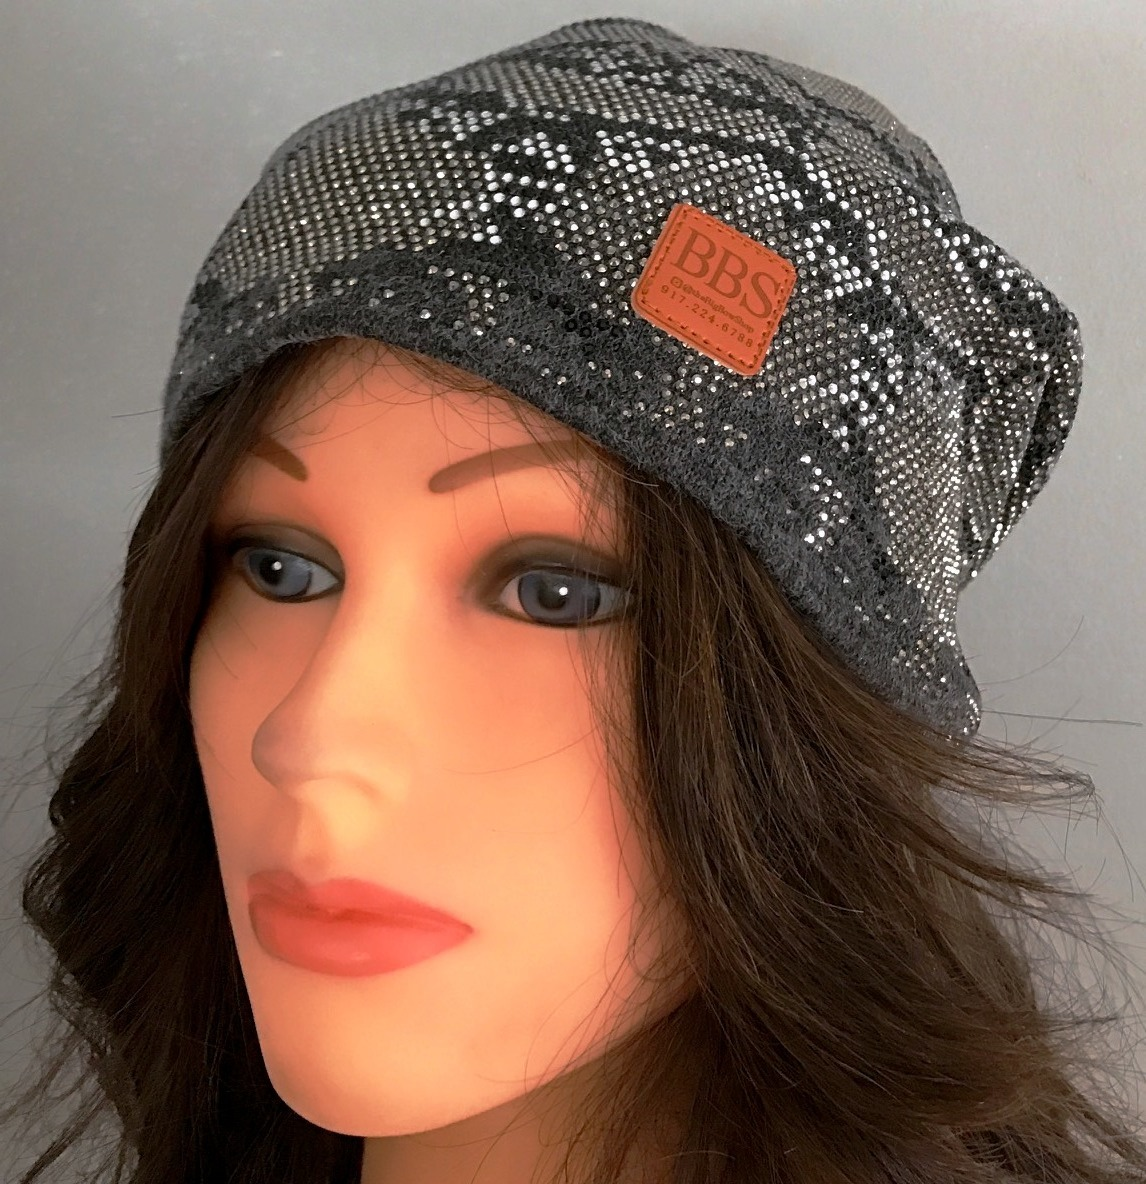 Gray beanie with snakeskin pattern